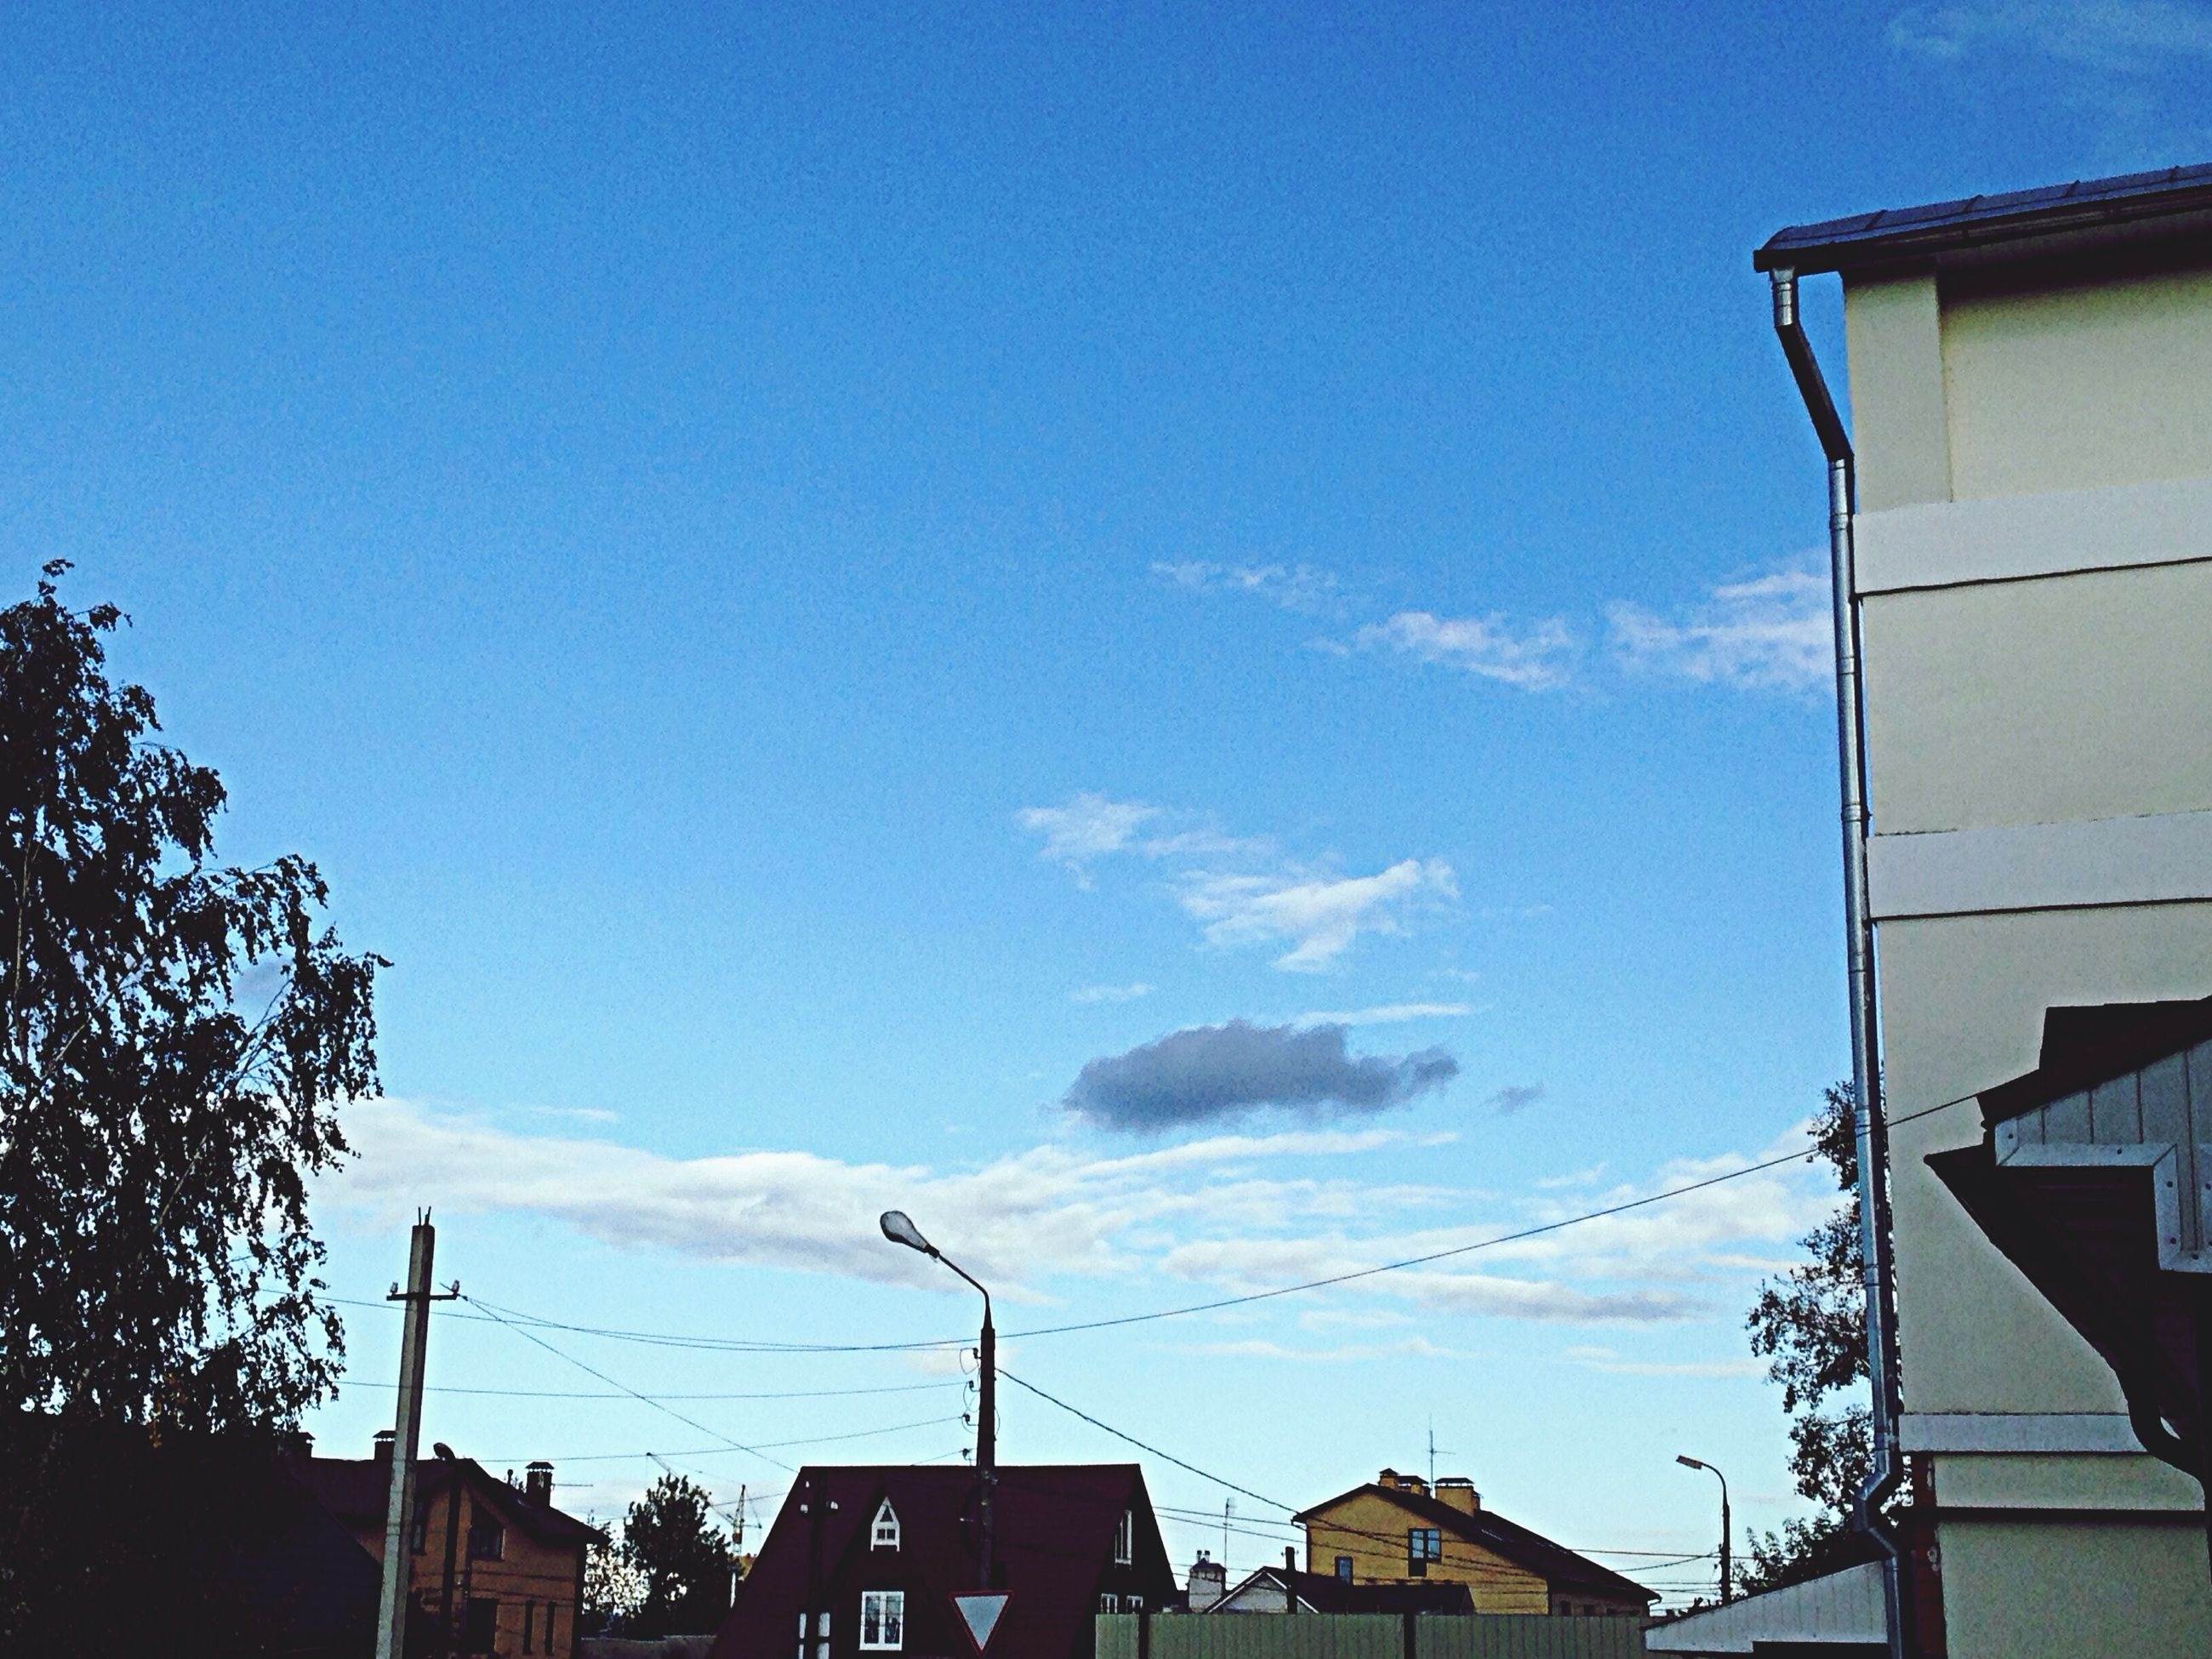 building exterior, architecture, built structure, low angle view, power line, sky, residential structure, residential building, blue, building, house, cable, city, high section, electricity pylon, electricity, outdoors, street light, no people, day